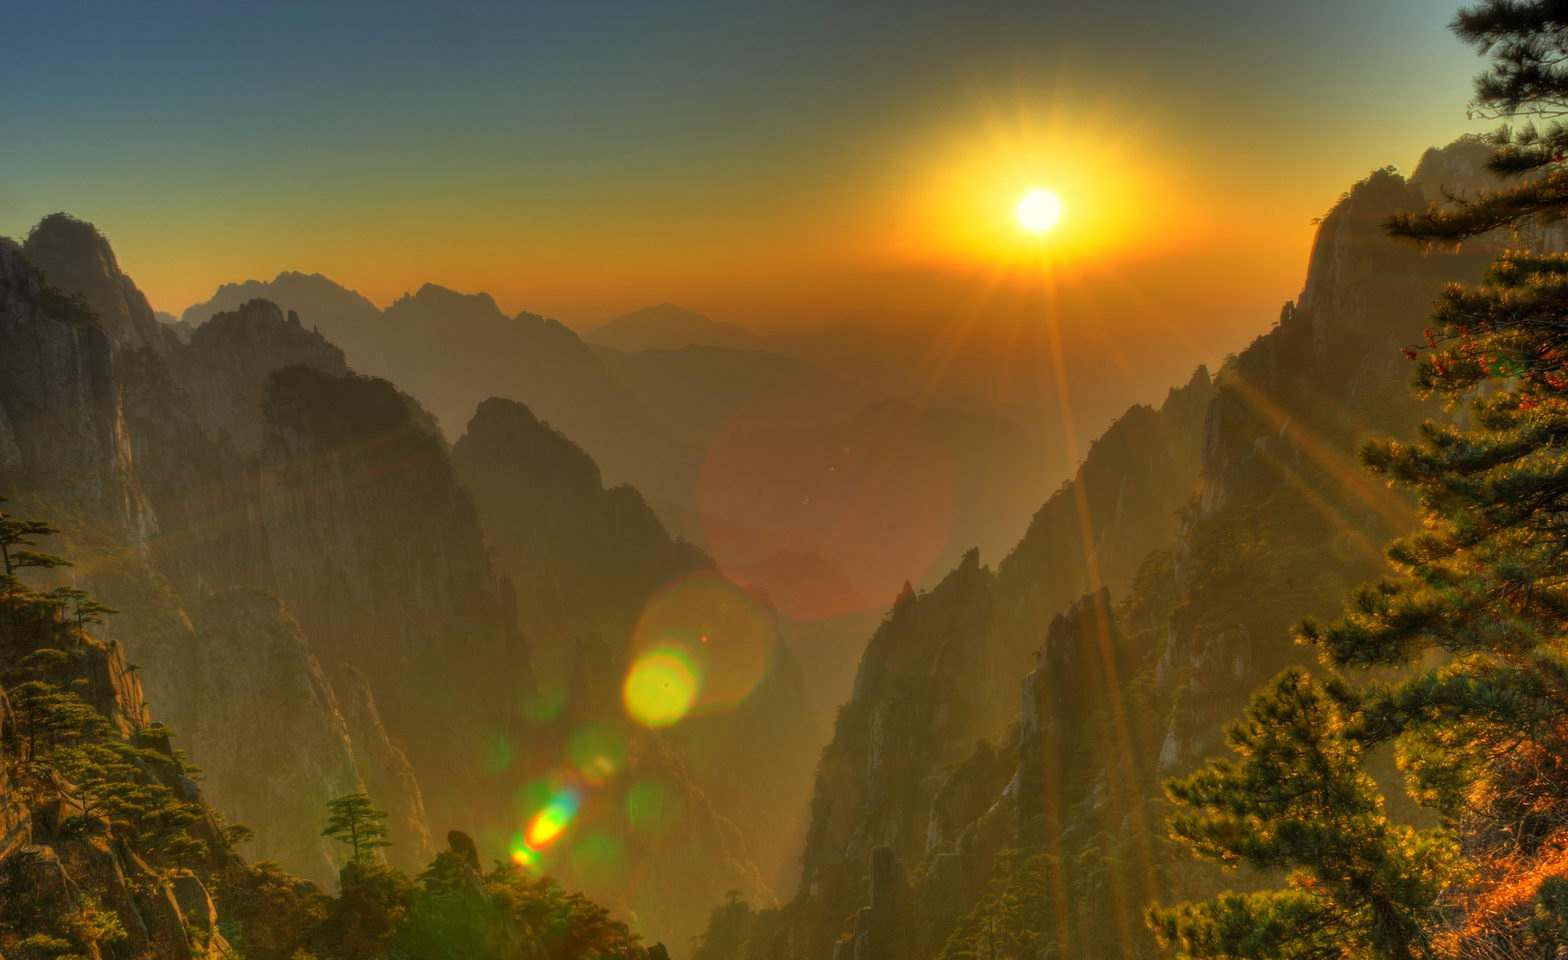 3-Day_Beijing_Huangshan_Sightseeing_Tour_with_Round-trip_High-speed_Train_5.jpg